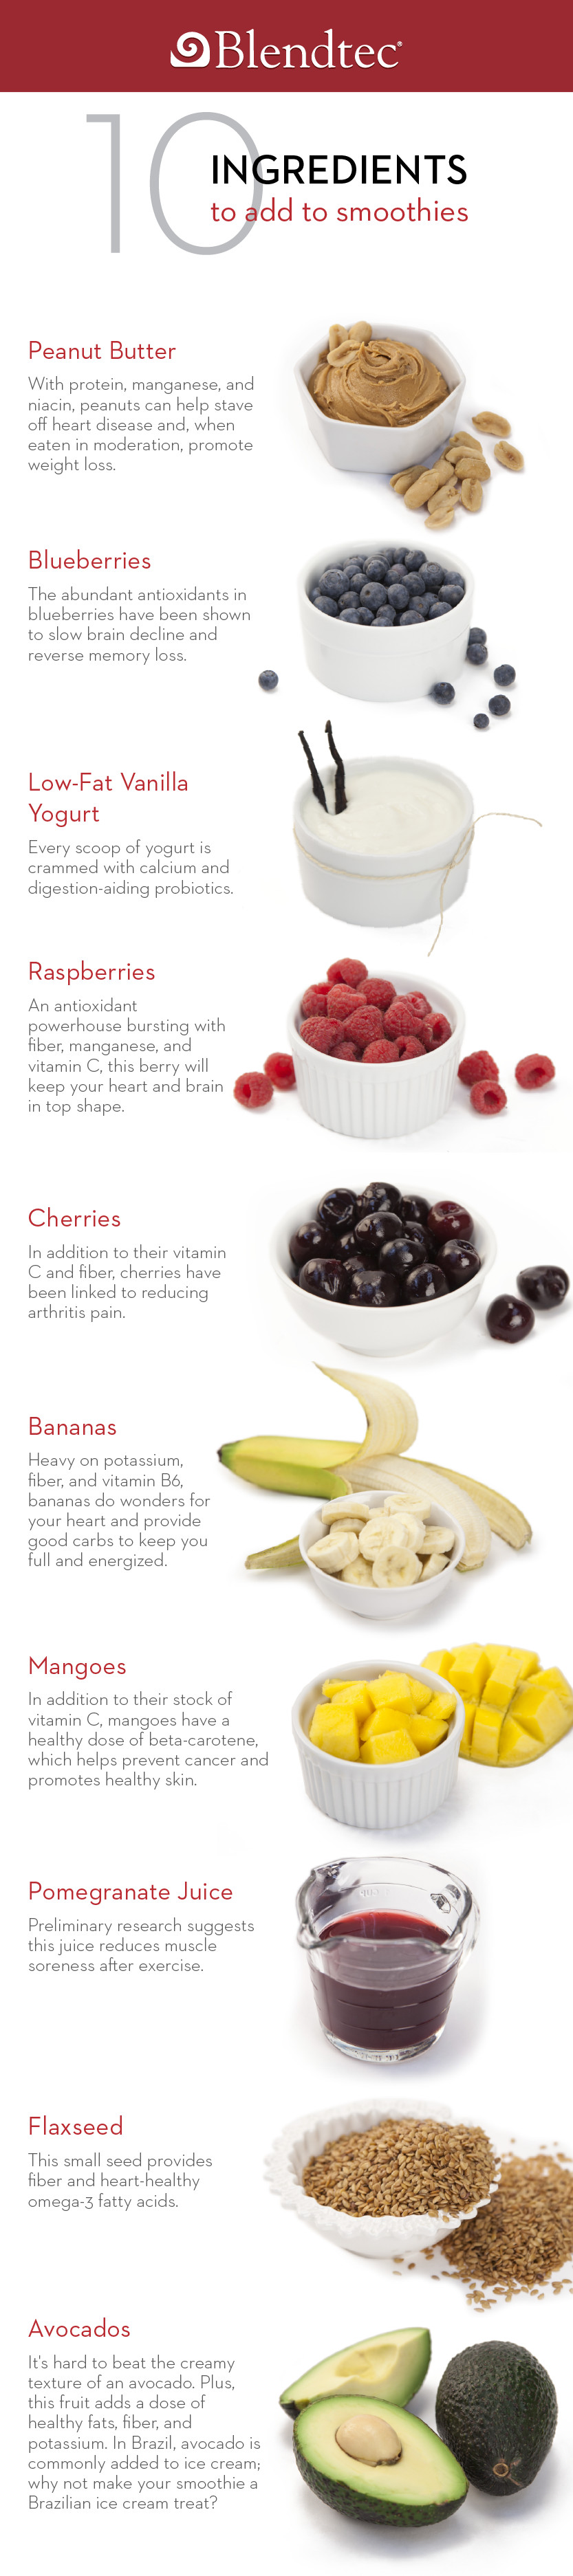 Ingredients For Healthy Smoothies  10 Ingre nts You Should be Adding to Your Smoothies